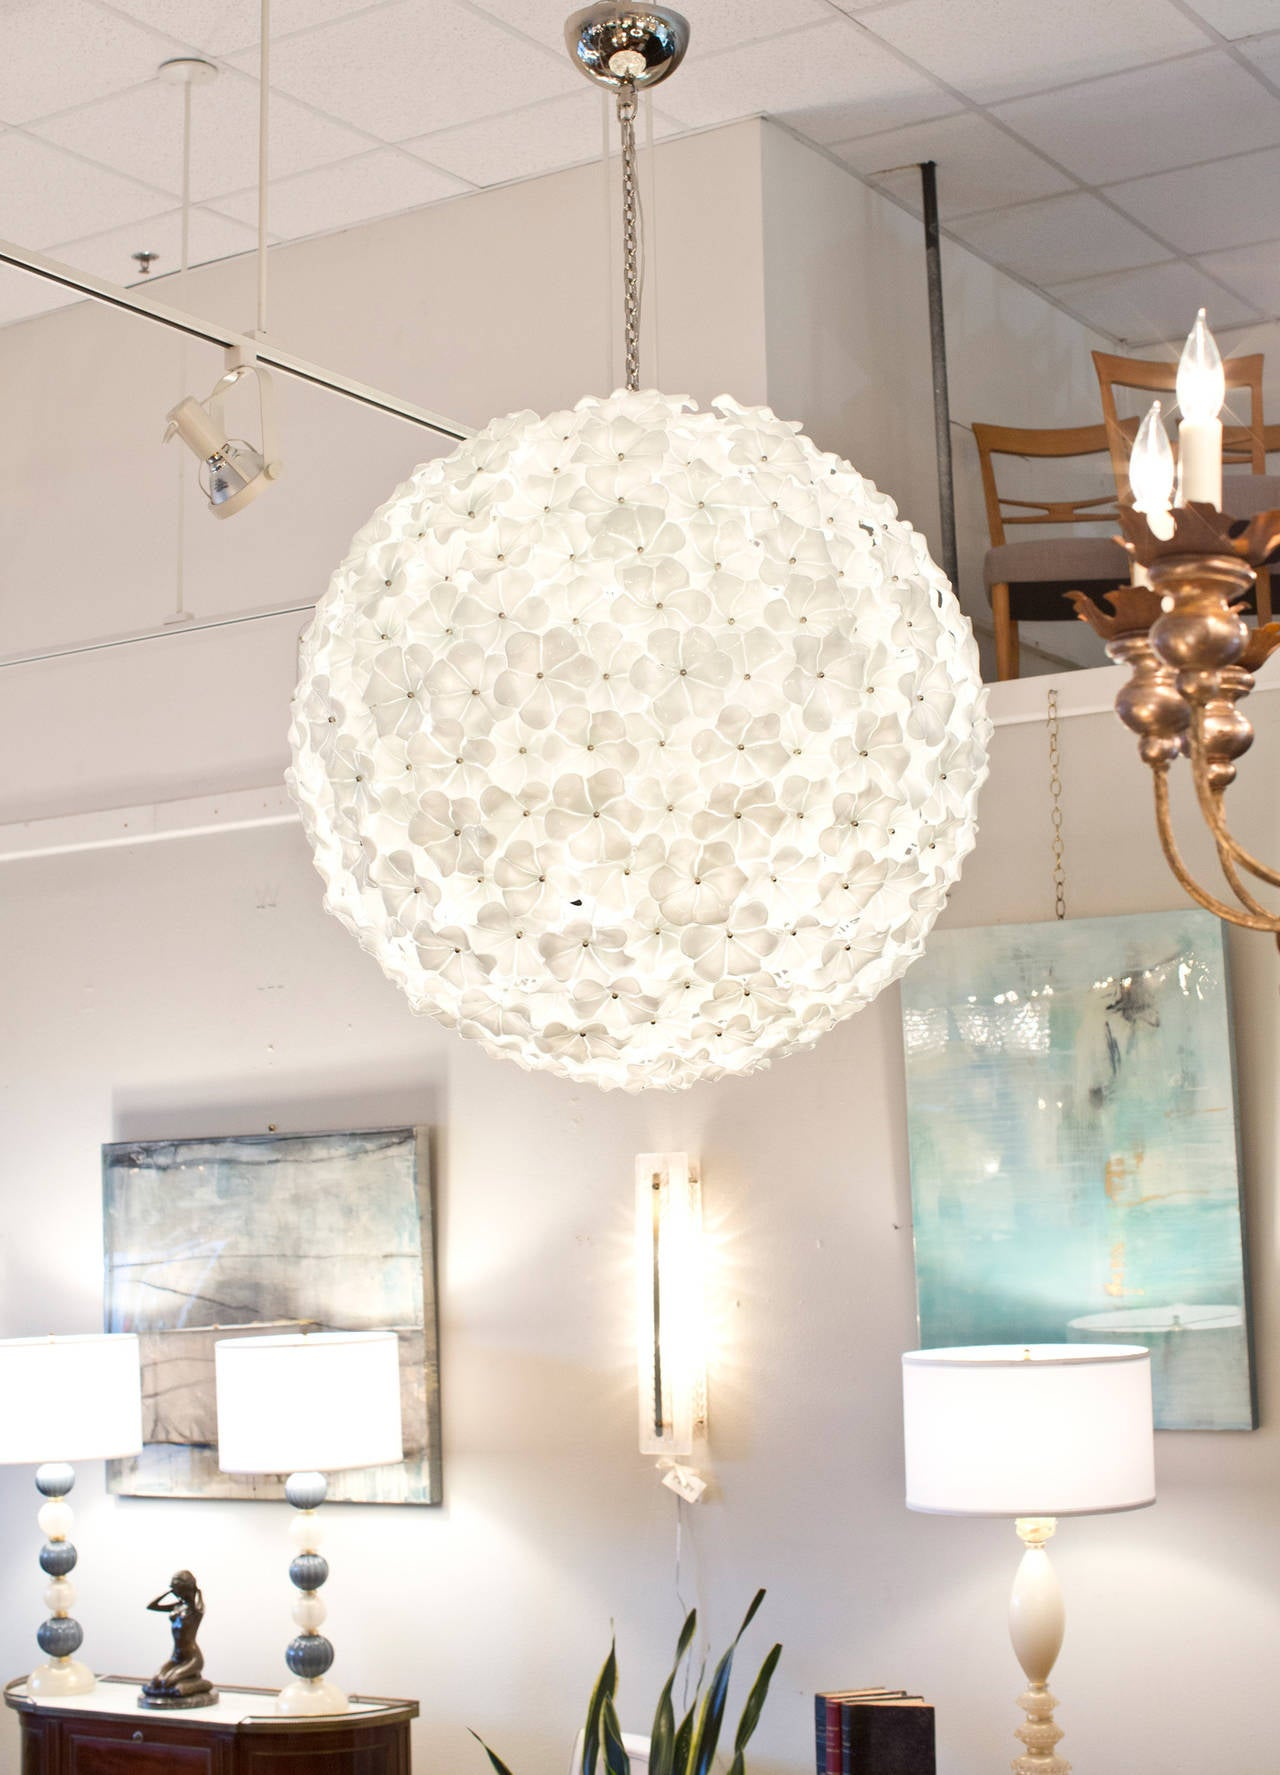 Monumental murano glass flower chandelier by cenedese for sale at gorgeous gigantic murano glass flower chandelier in opaline and clear glass 313 flowers made aloadofball Gallery